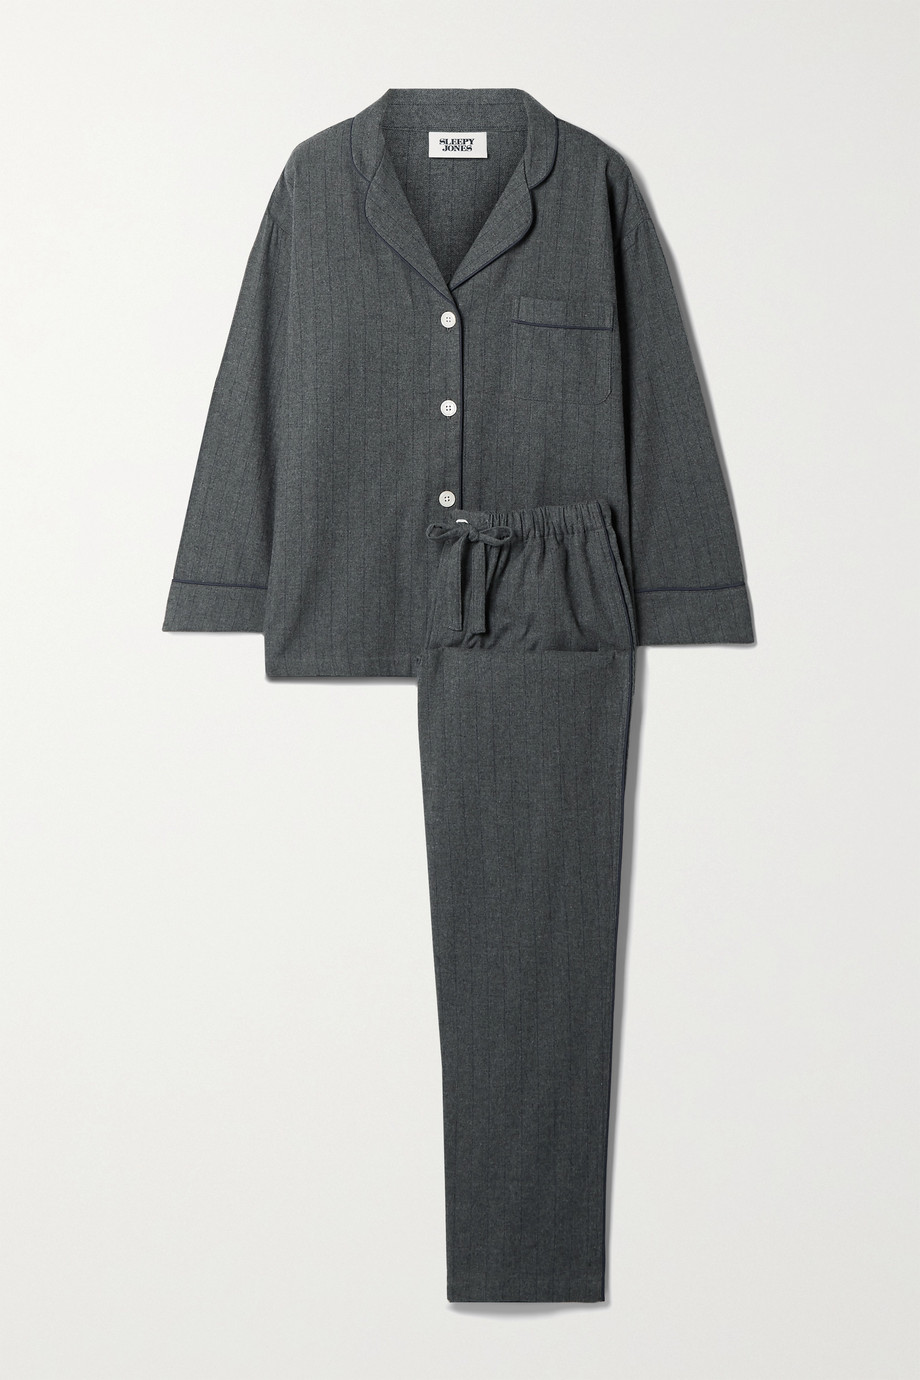 Sleepy Jones Marina pinstriped cotton-flannel pajama set